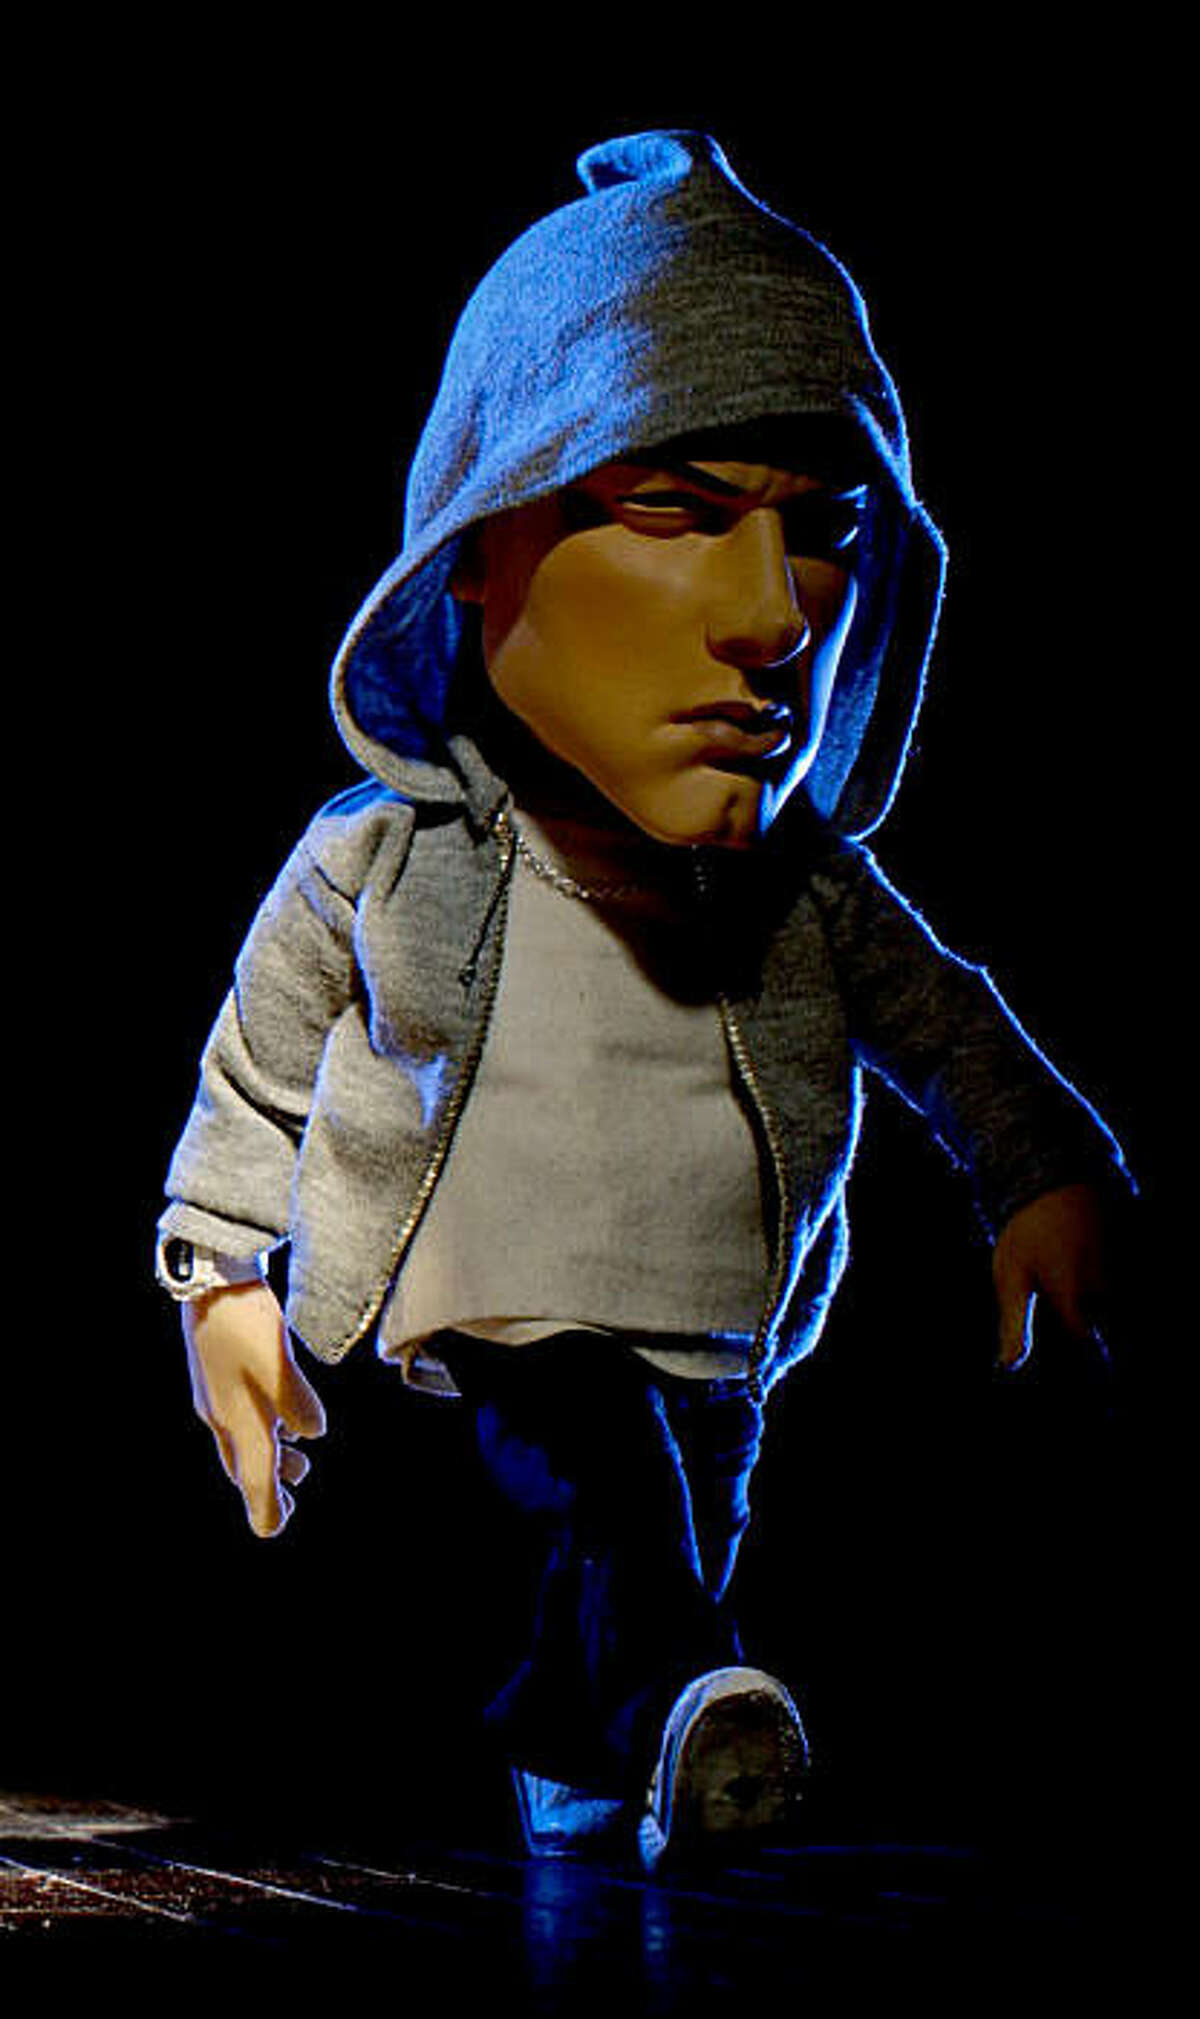 **COMMERCIAL IMAGE** In this photo released by Brisk on Sunday, Feb. 6, 2011, Eminem is seen in puppet form for Brisk Iced Tea's Super Bowl TV spot shot in San Francisco. (Brisk via AP Images)